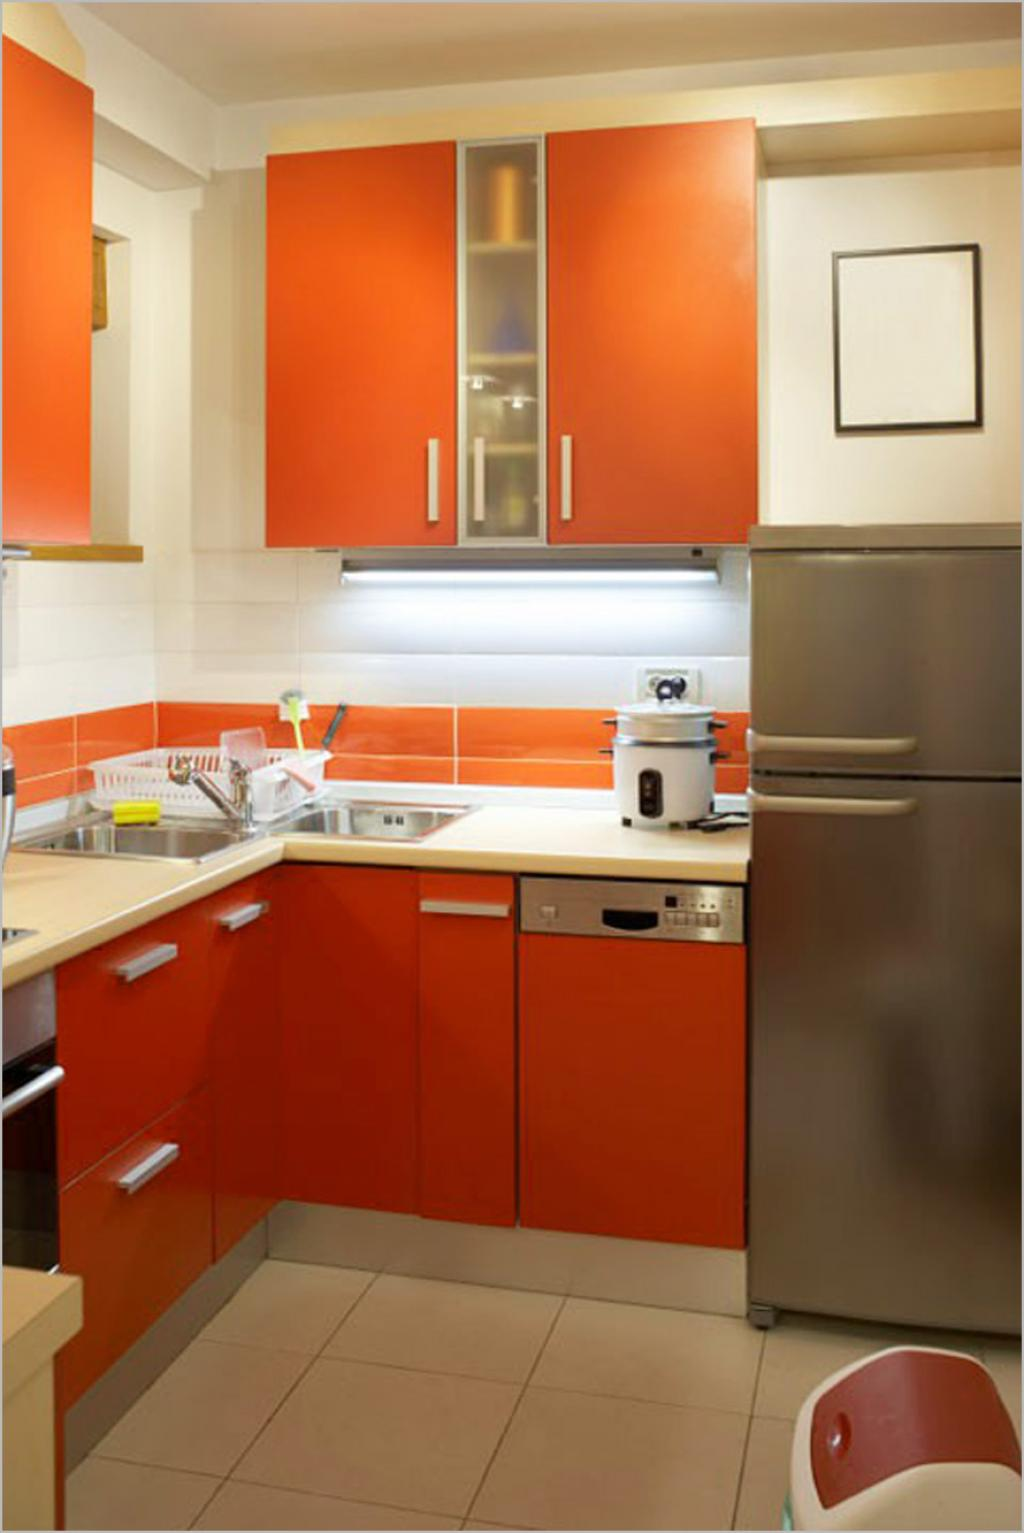 Really Small Kitchen Design Ideas With Orange Cabinet